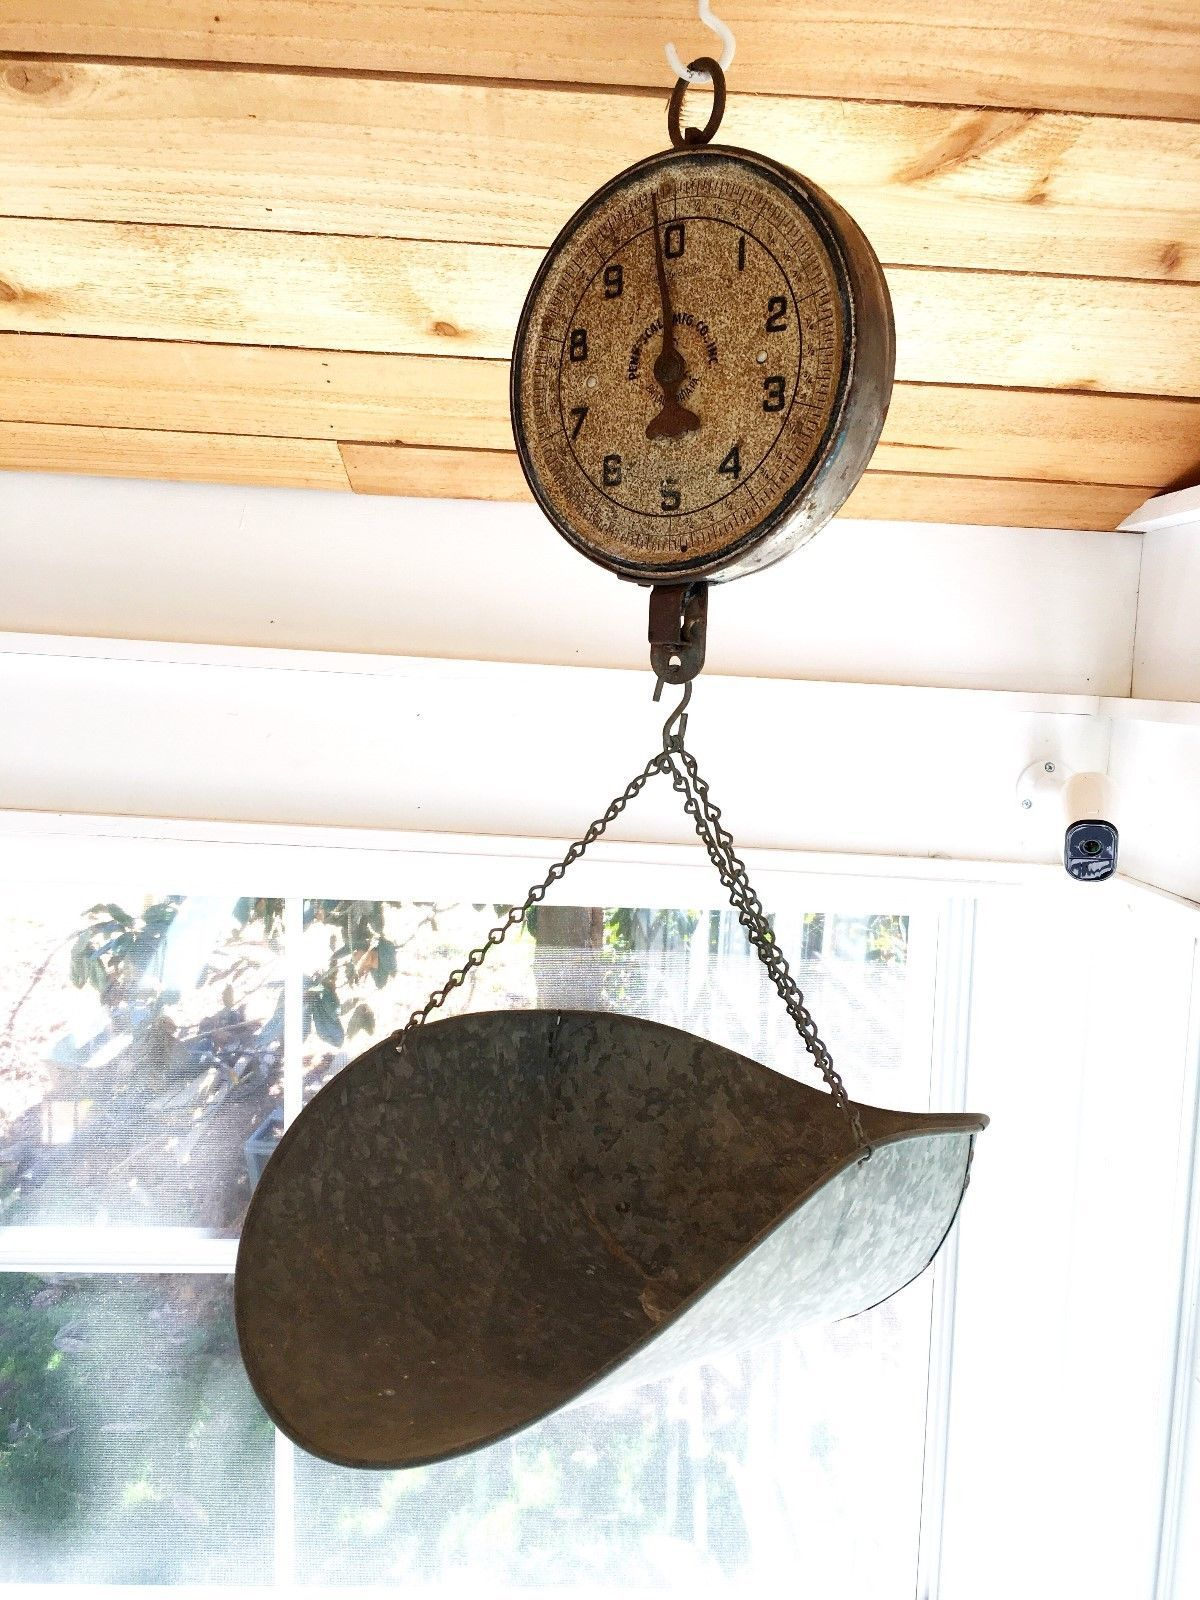 VINTAGE ANTIQUE PENN SCALE CO HANGING PRODUCE SCALE W